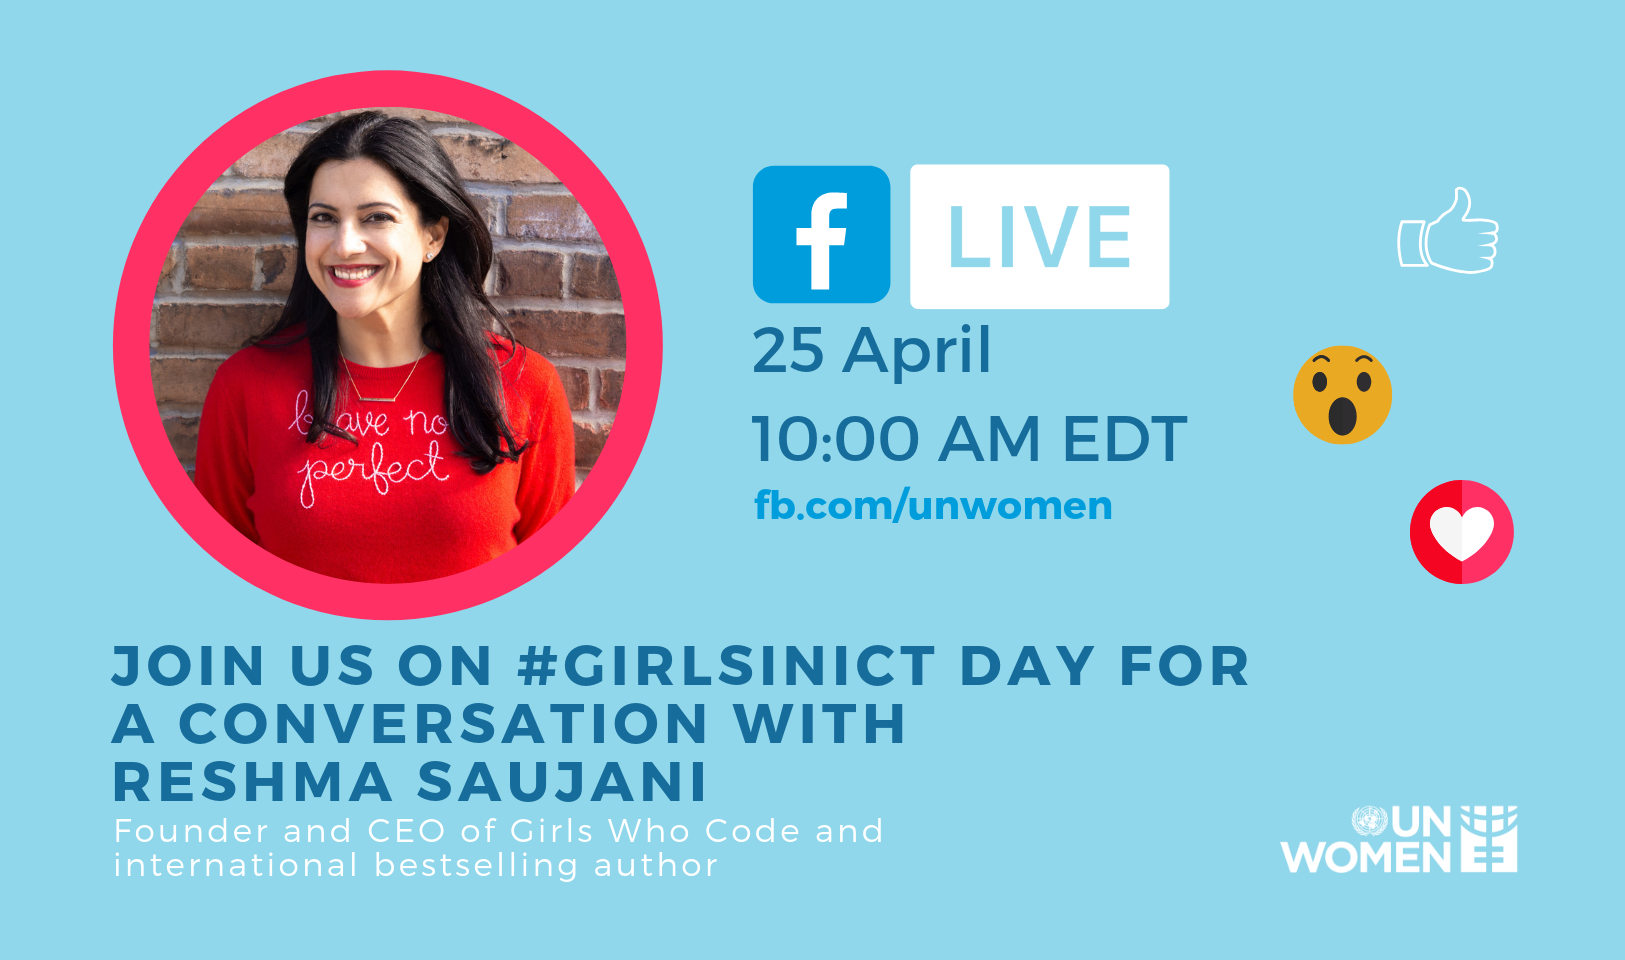 Join us on #GirlsInICT Day for a conversation with Reshma Saujani on FacebookLive